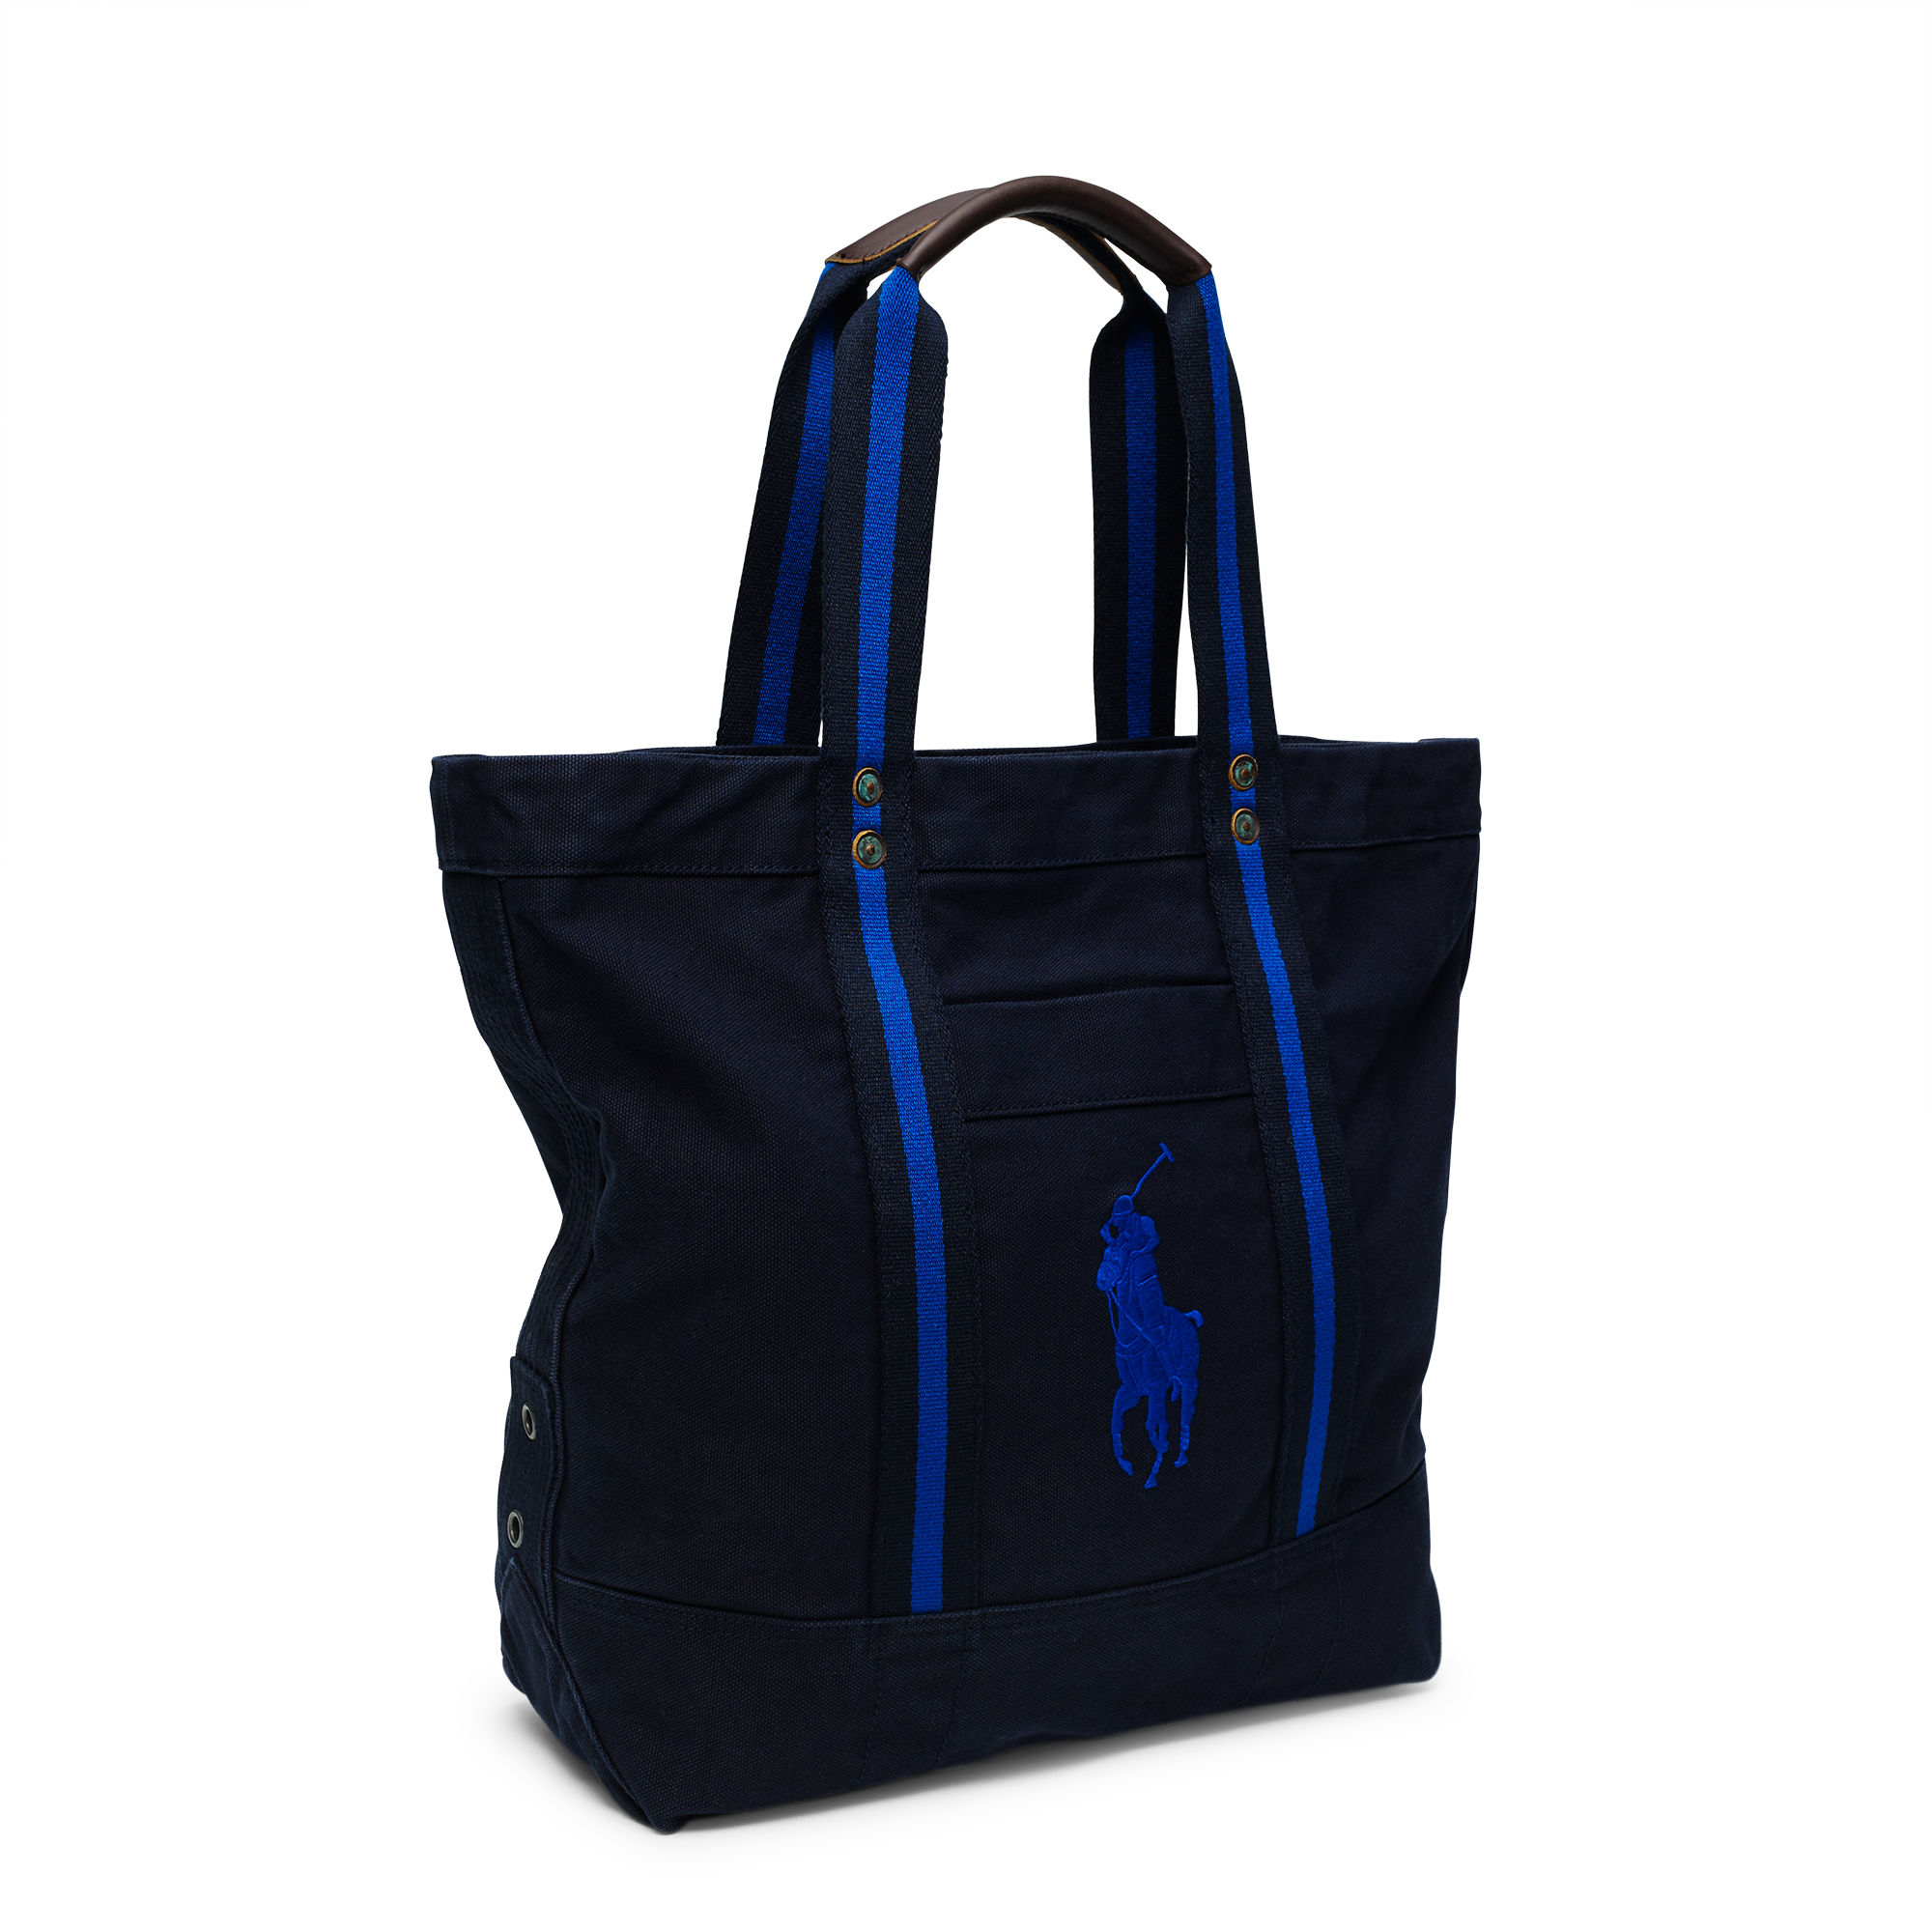 Polo Ralph Lauren Canvas Big Pony Tote in Blue for Men - Lyst 8cd86a7eaa453